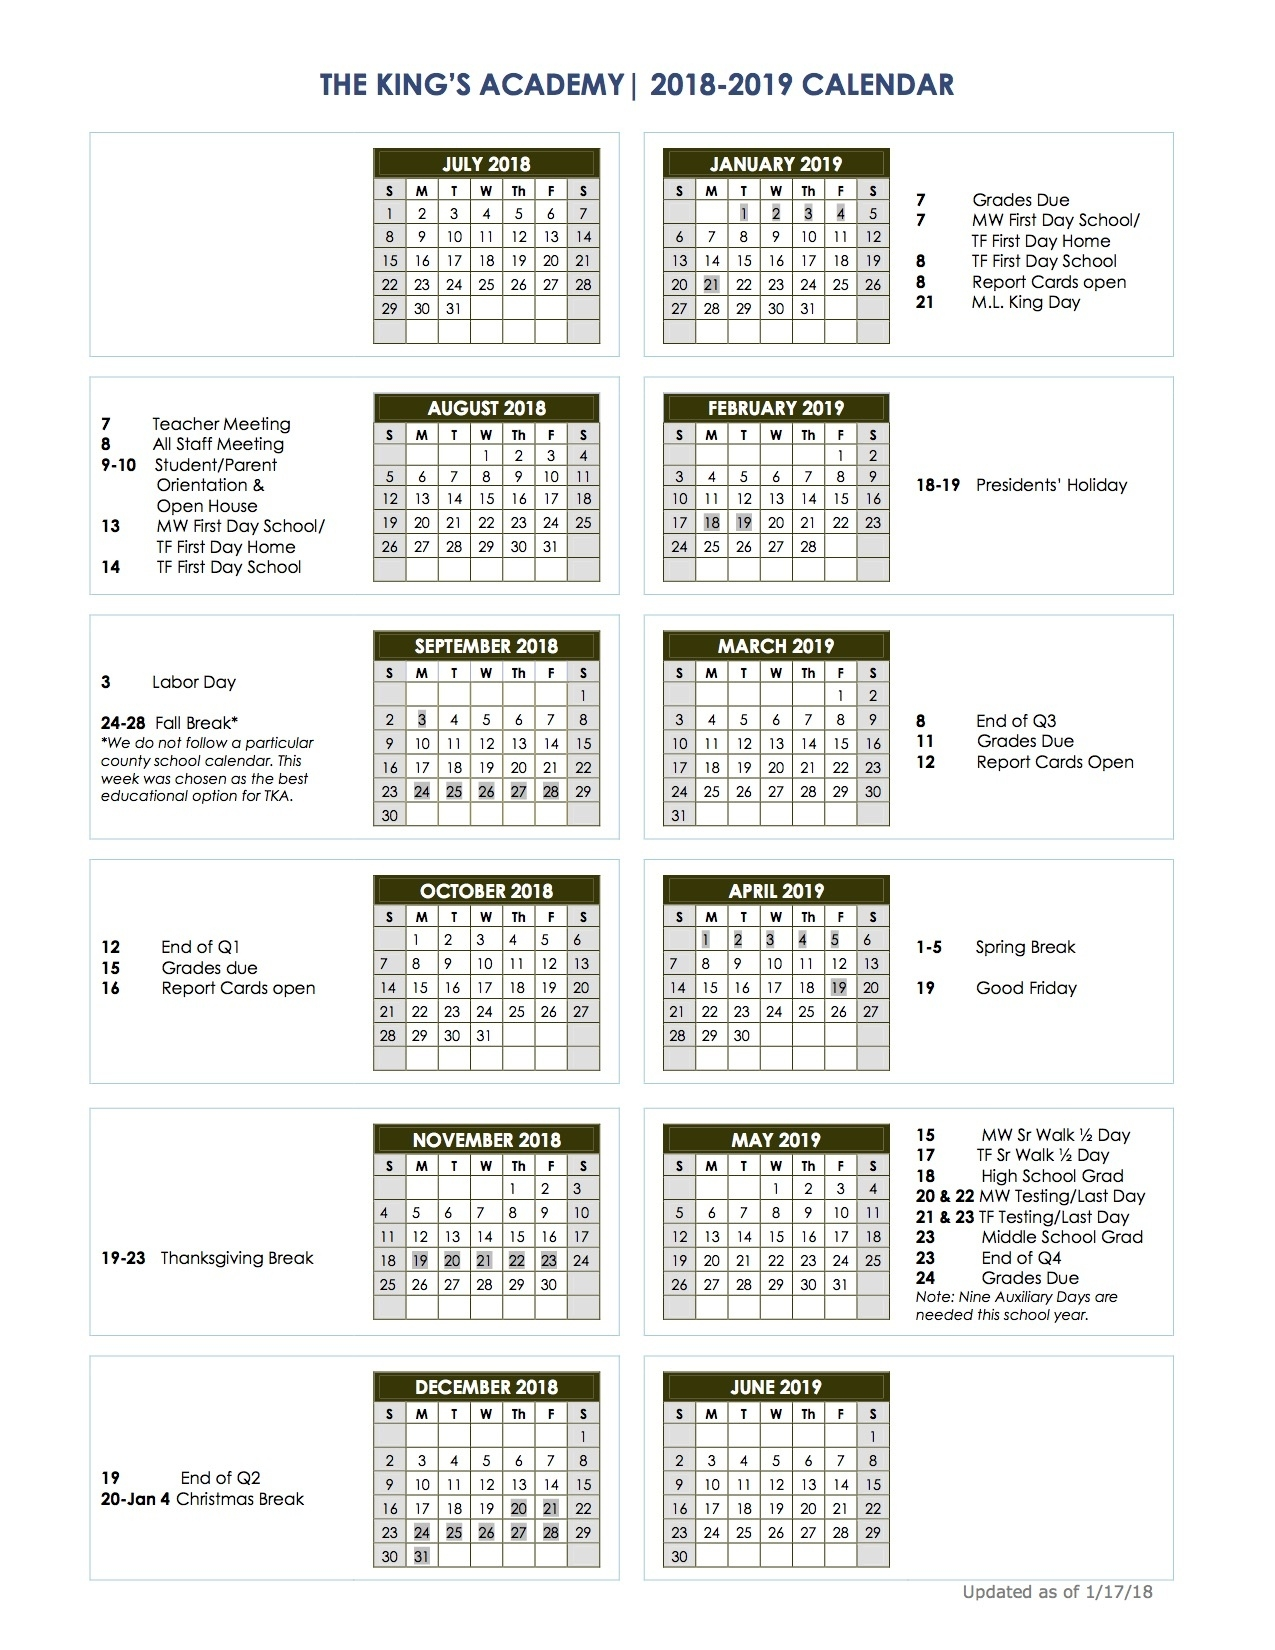 2018-2019 School Calendar - The King's Academy_School Calendar Florida 2020